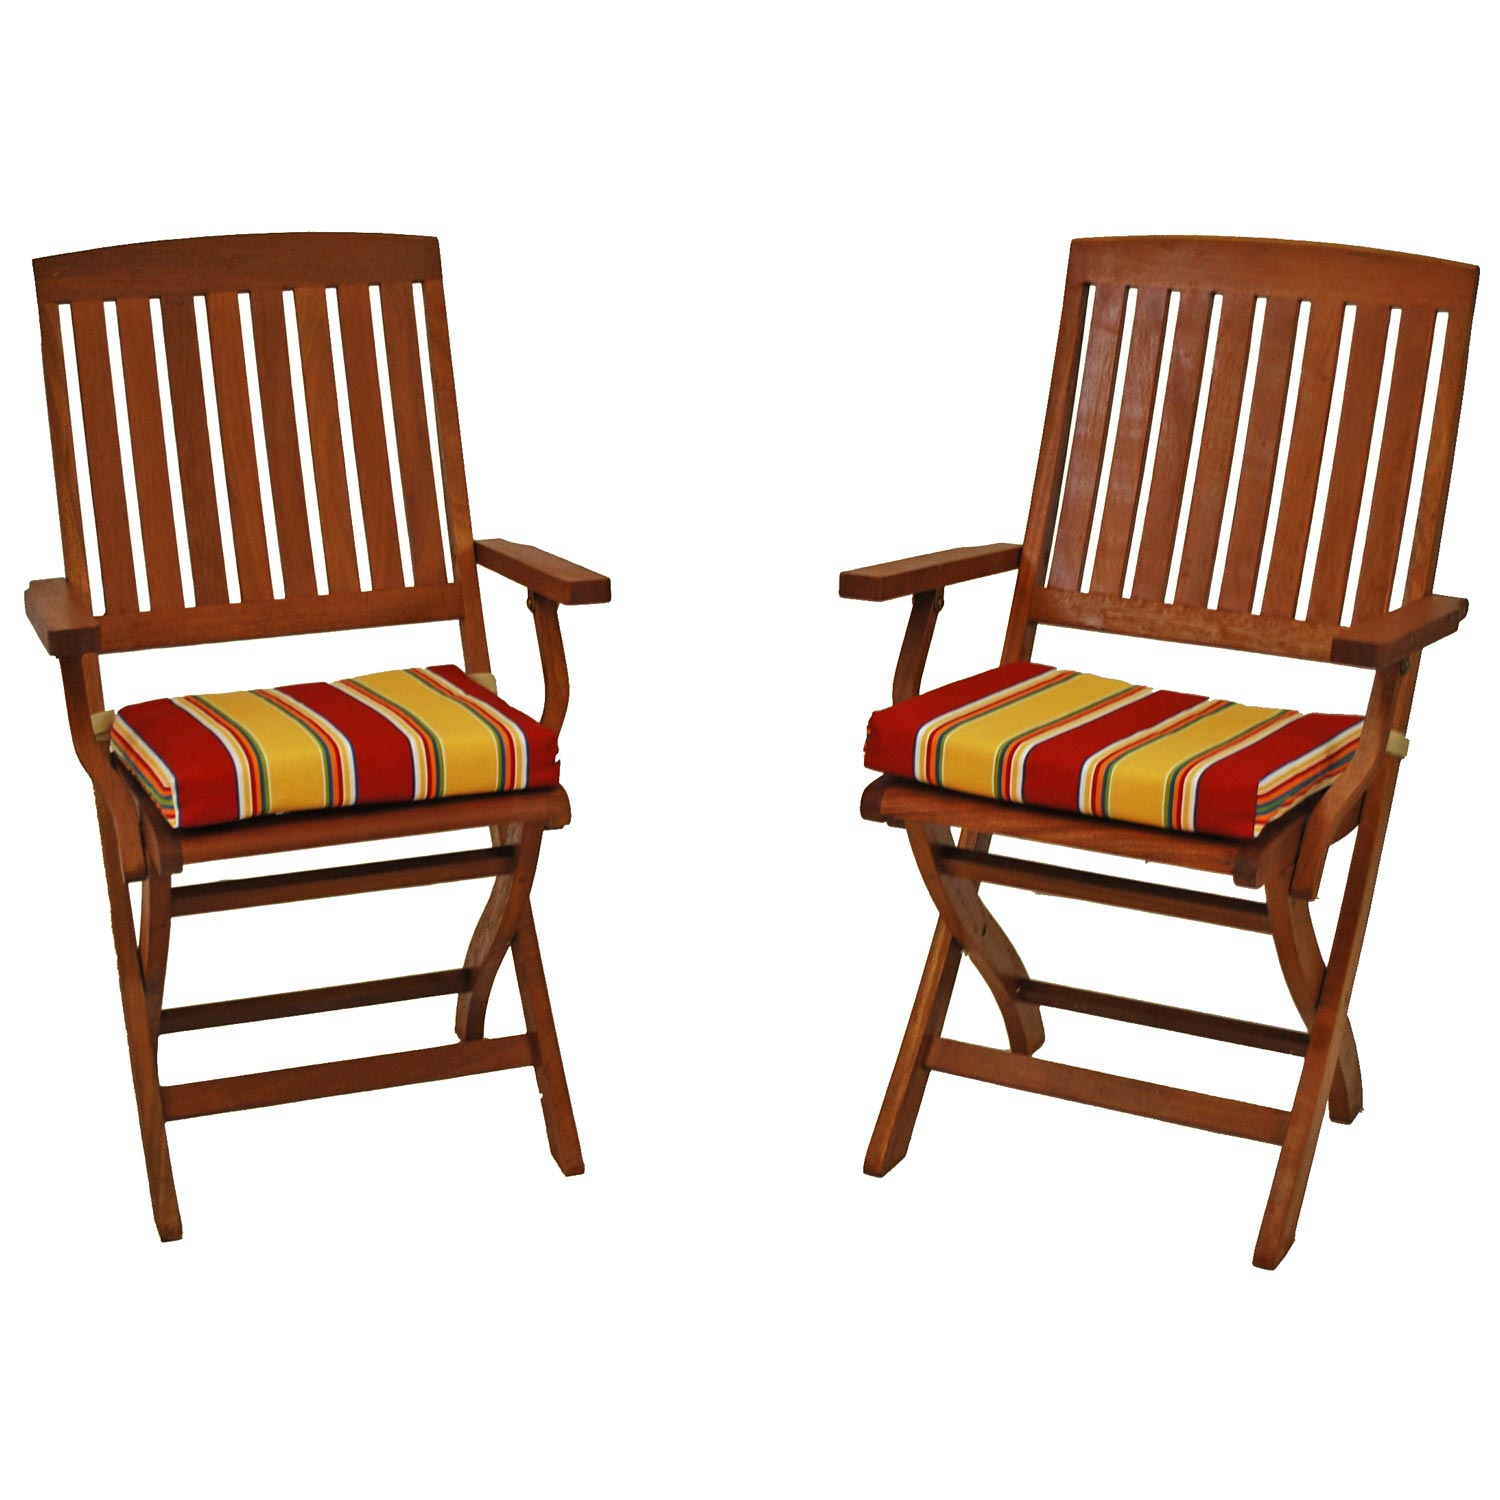 fabric outside chairs chair design background outdoor folding cushion patterned set of 2